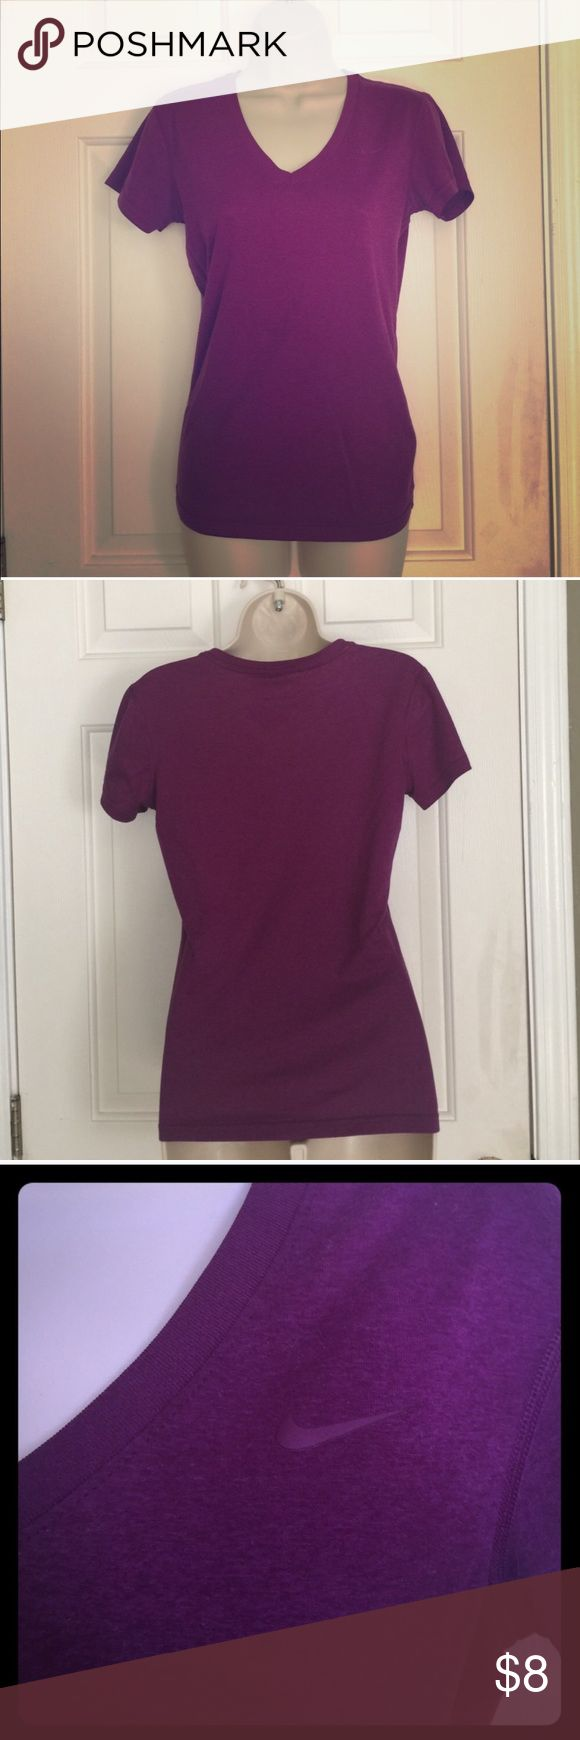 Purple Short Sleeve Nike Dri Fit (worn once) EUC ! No flaws ! Realized I only like to workout in tanks lol-beautiful purple (sort of like a light maroon) color. Last 2 pics show the color exactly as is I don't know why the first pic automatically put a filter on it. Nike Tops Tees - Short Sleeve